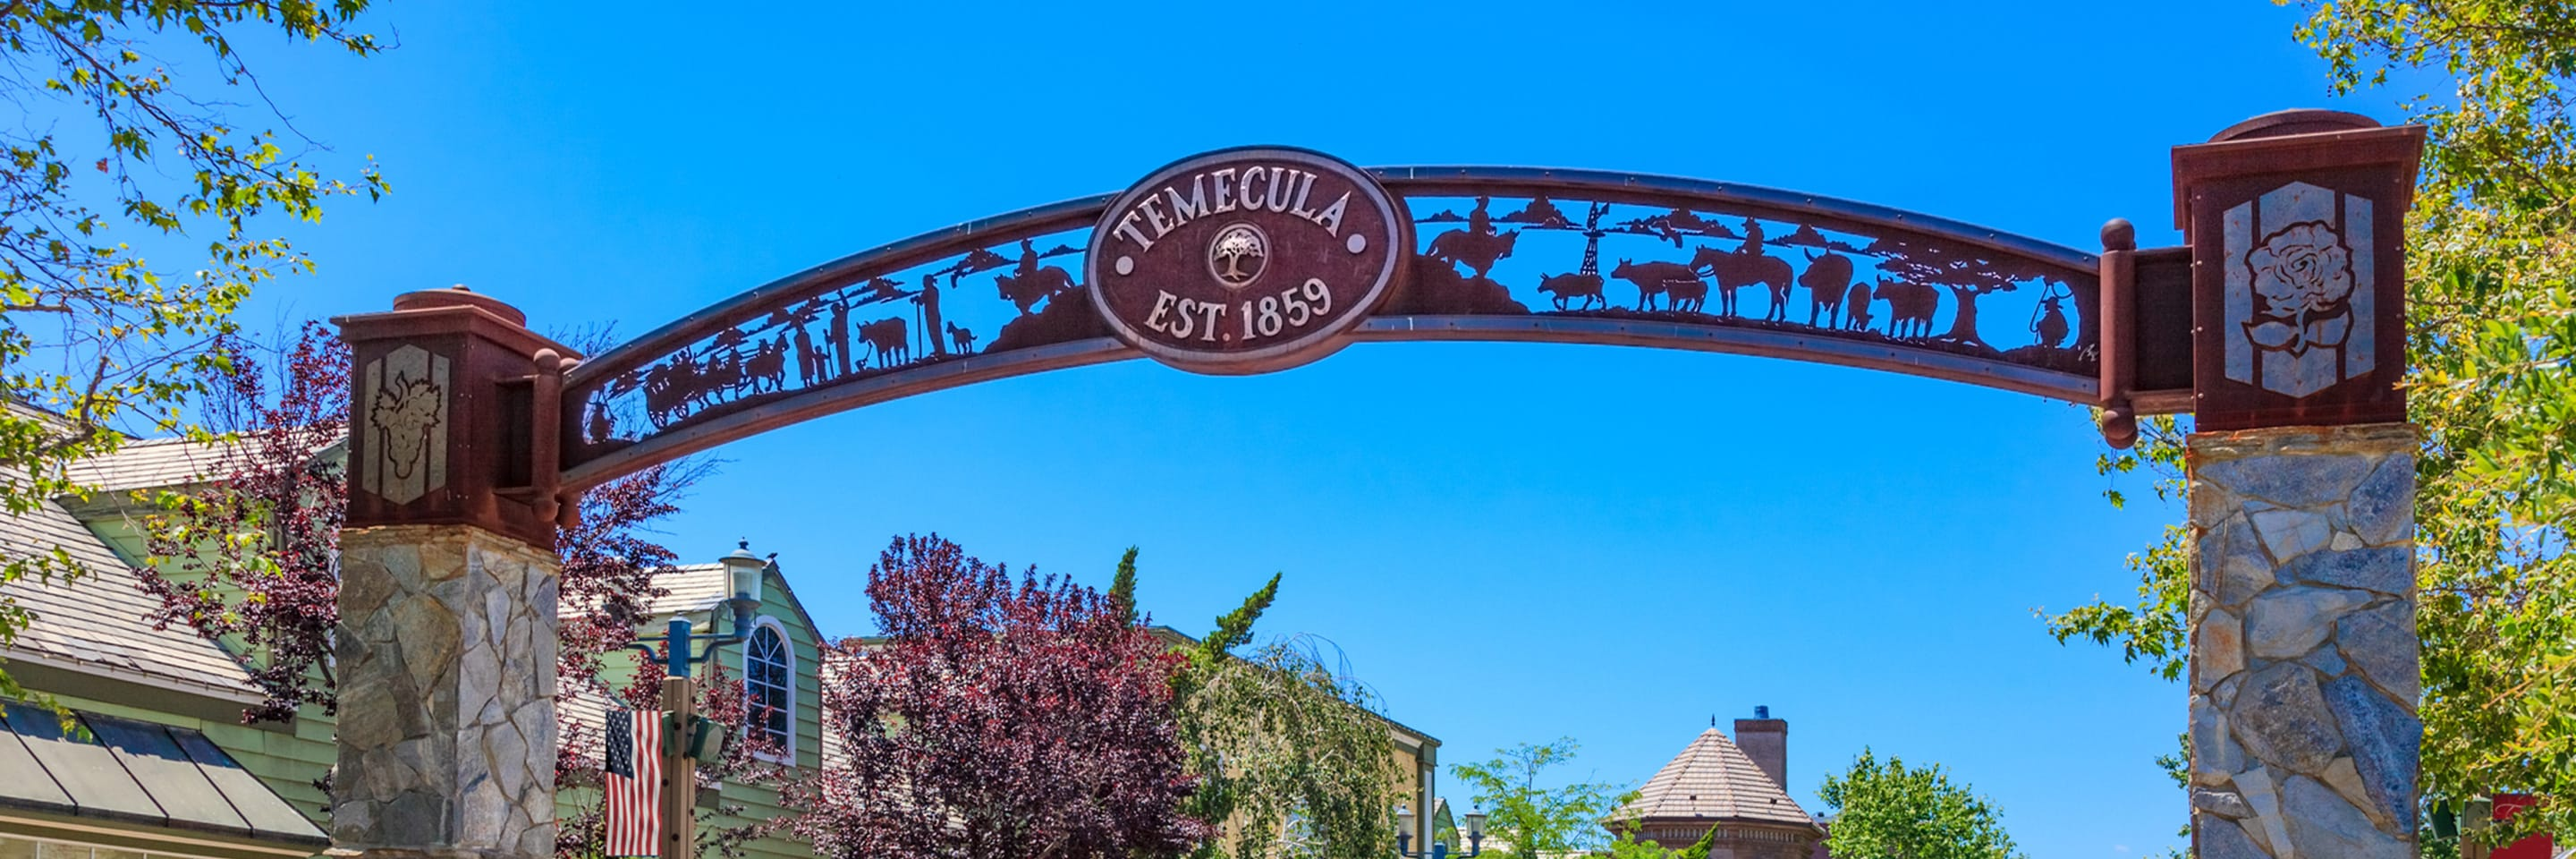 Hotels in Temecula